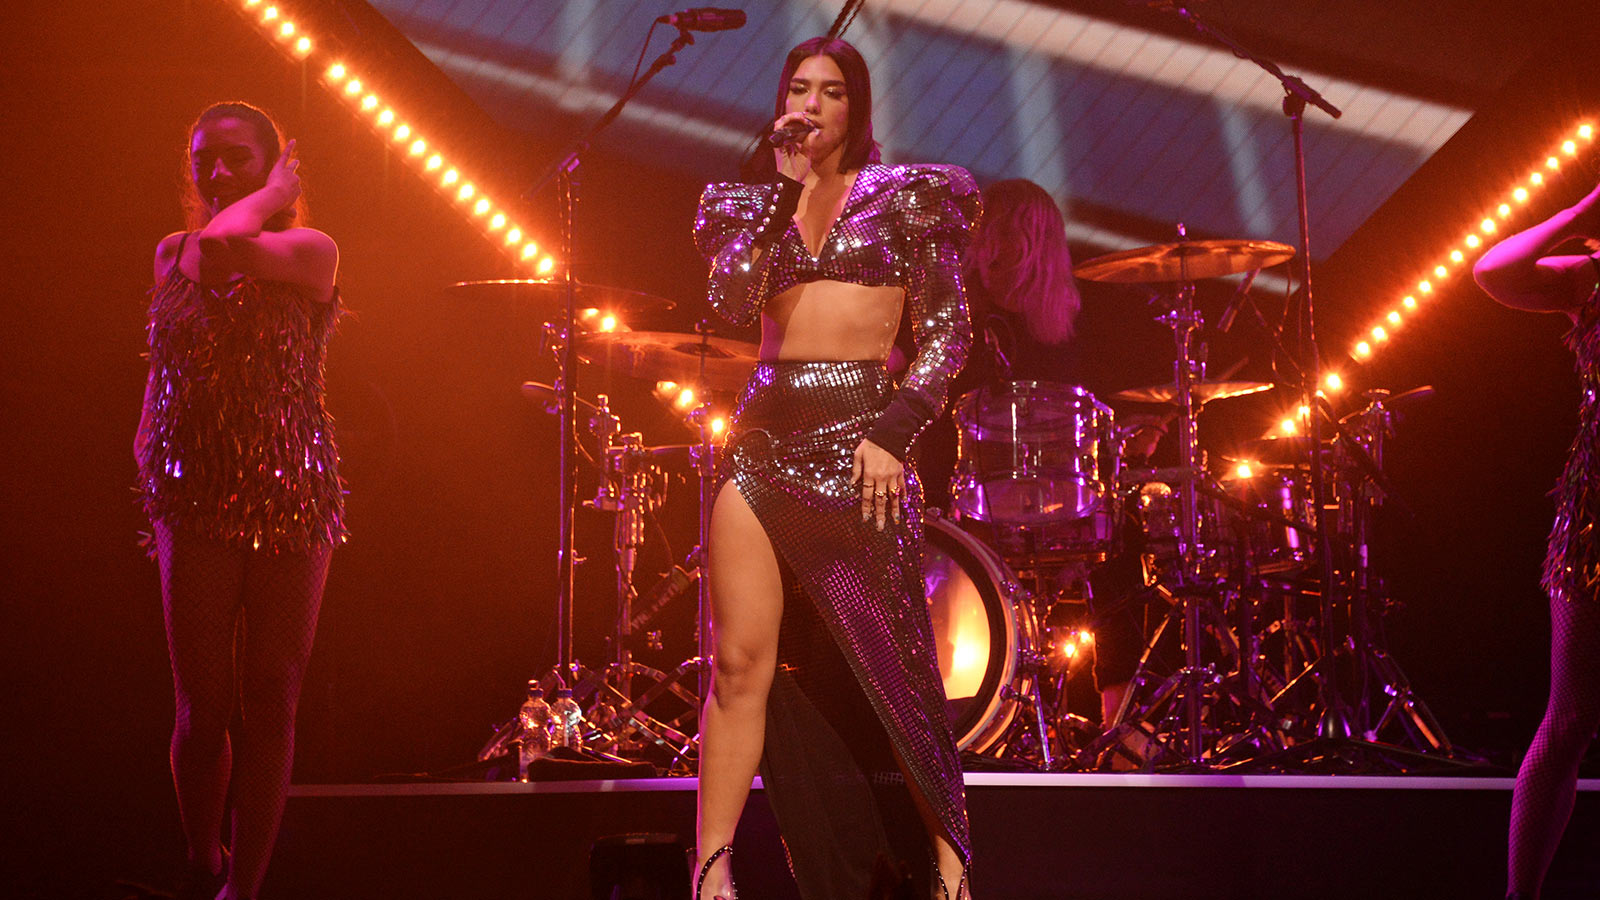 Dua Lipa on-stage in Amsterdam